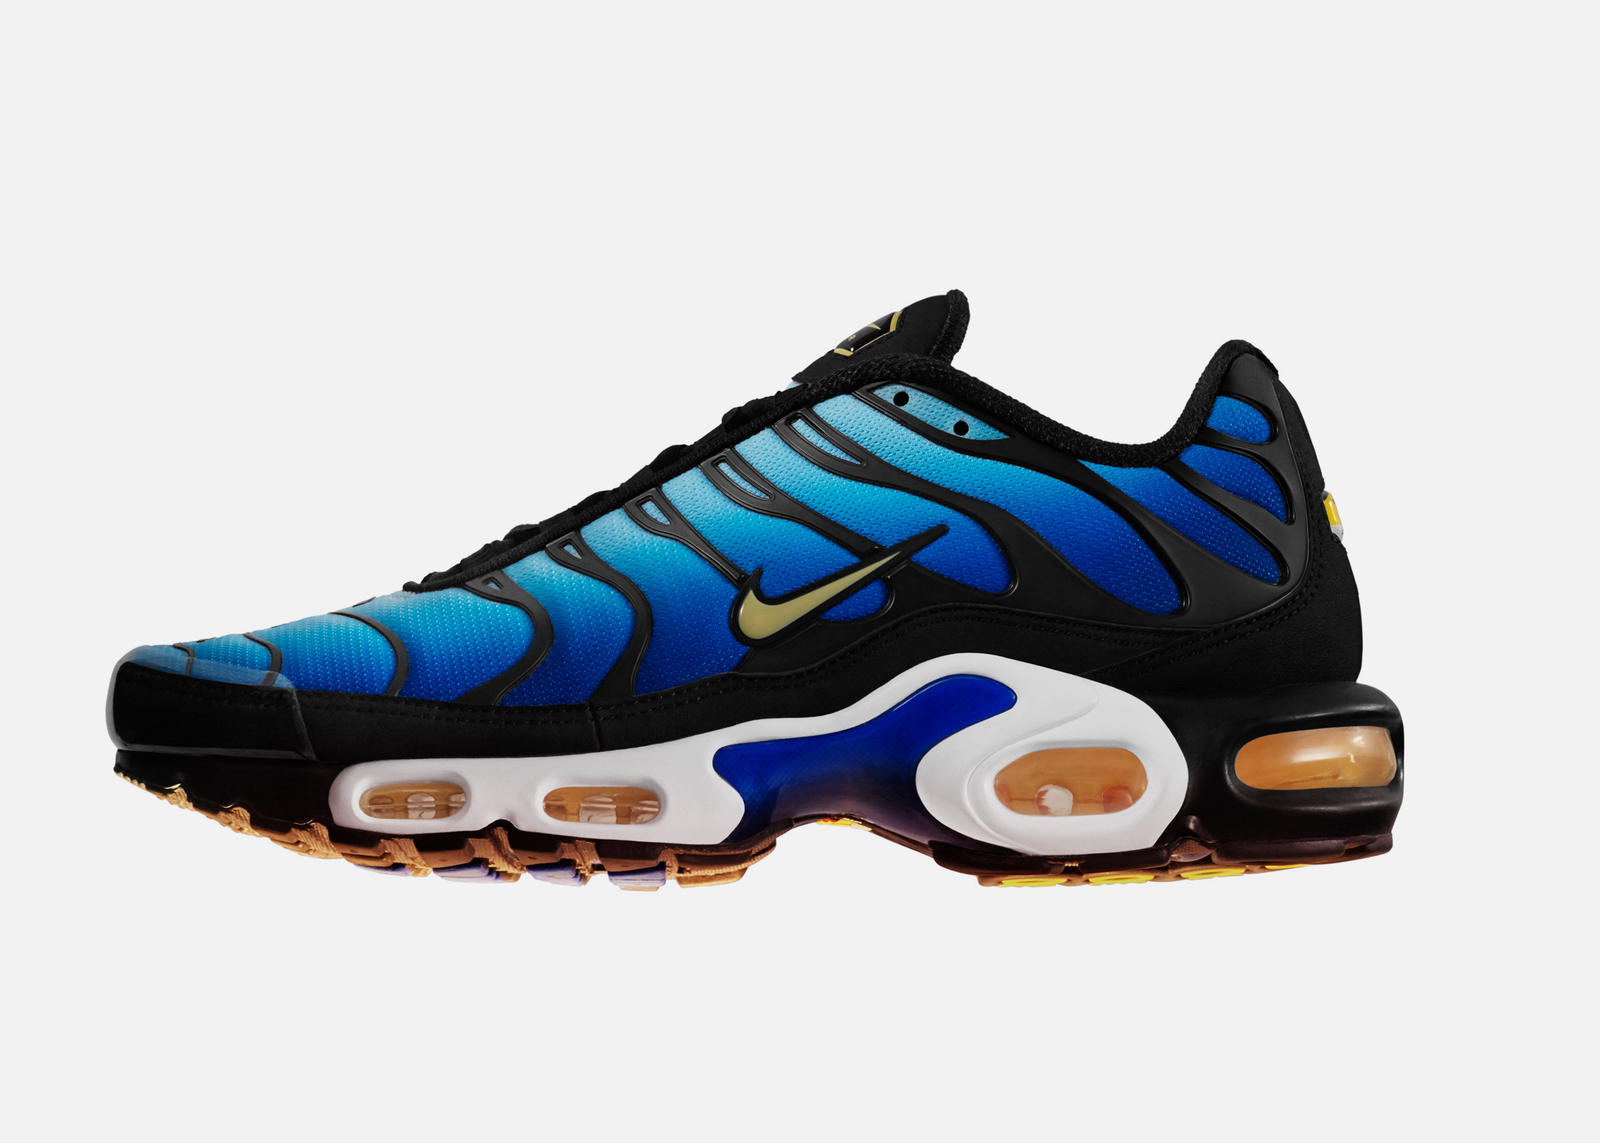 online retailer 619c4 4566a The Untold Story of the Nike Air Max Plus 20